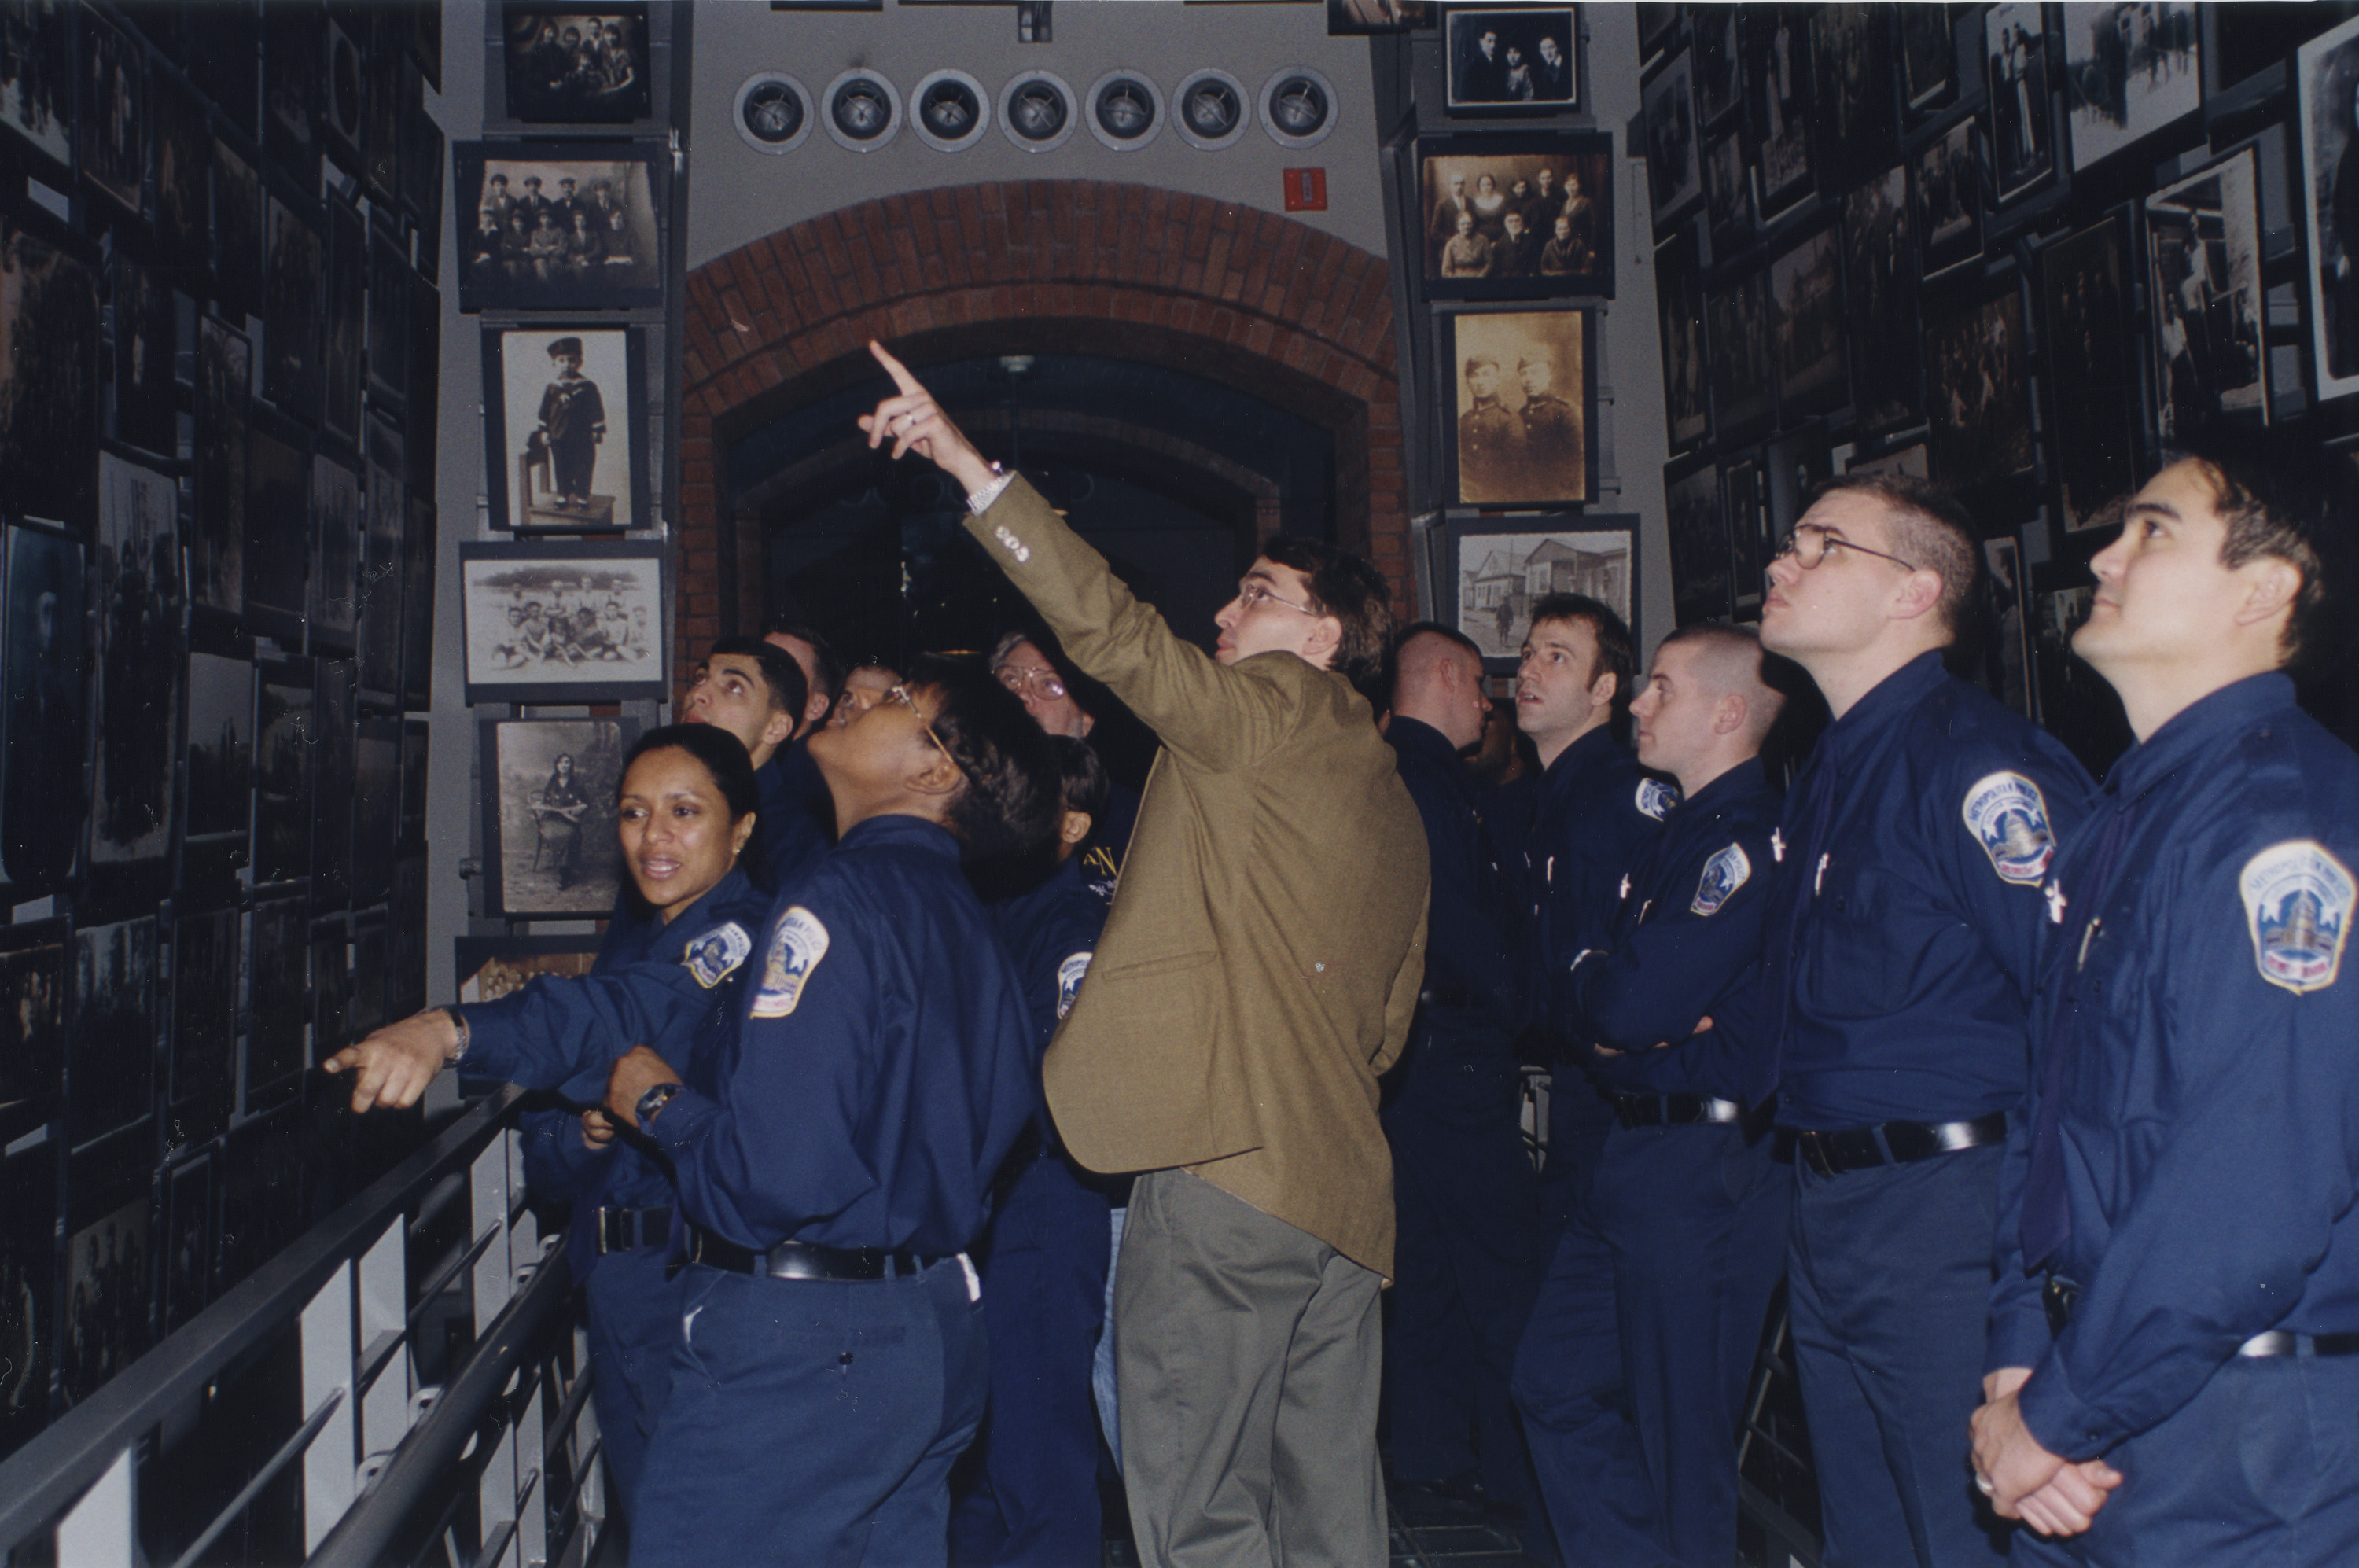 Andres Abril guides Washington, D.C. police cadets through the Tower of Faces (the Yaffa Eliach Shtetl Collection) segment of the permanent exhibition at the U.S. Holocaust Memorial Museum.